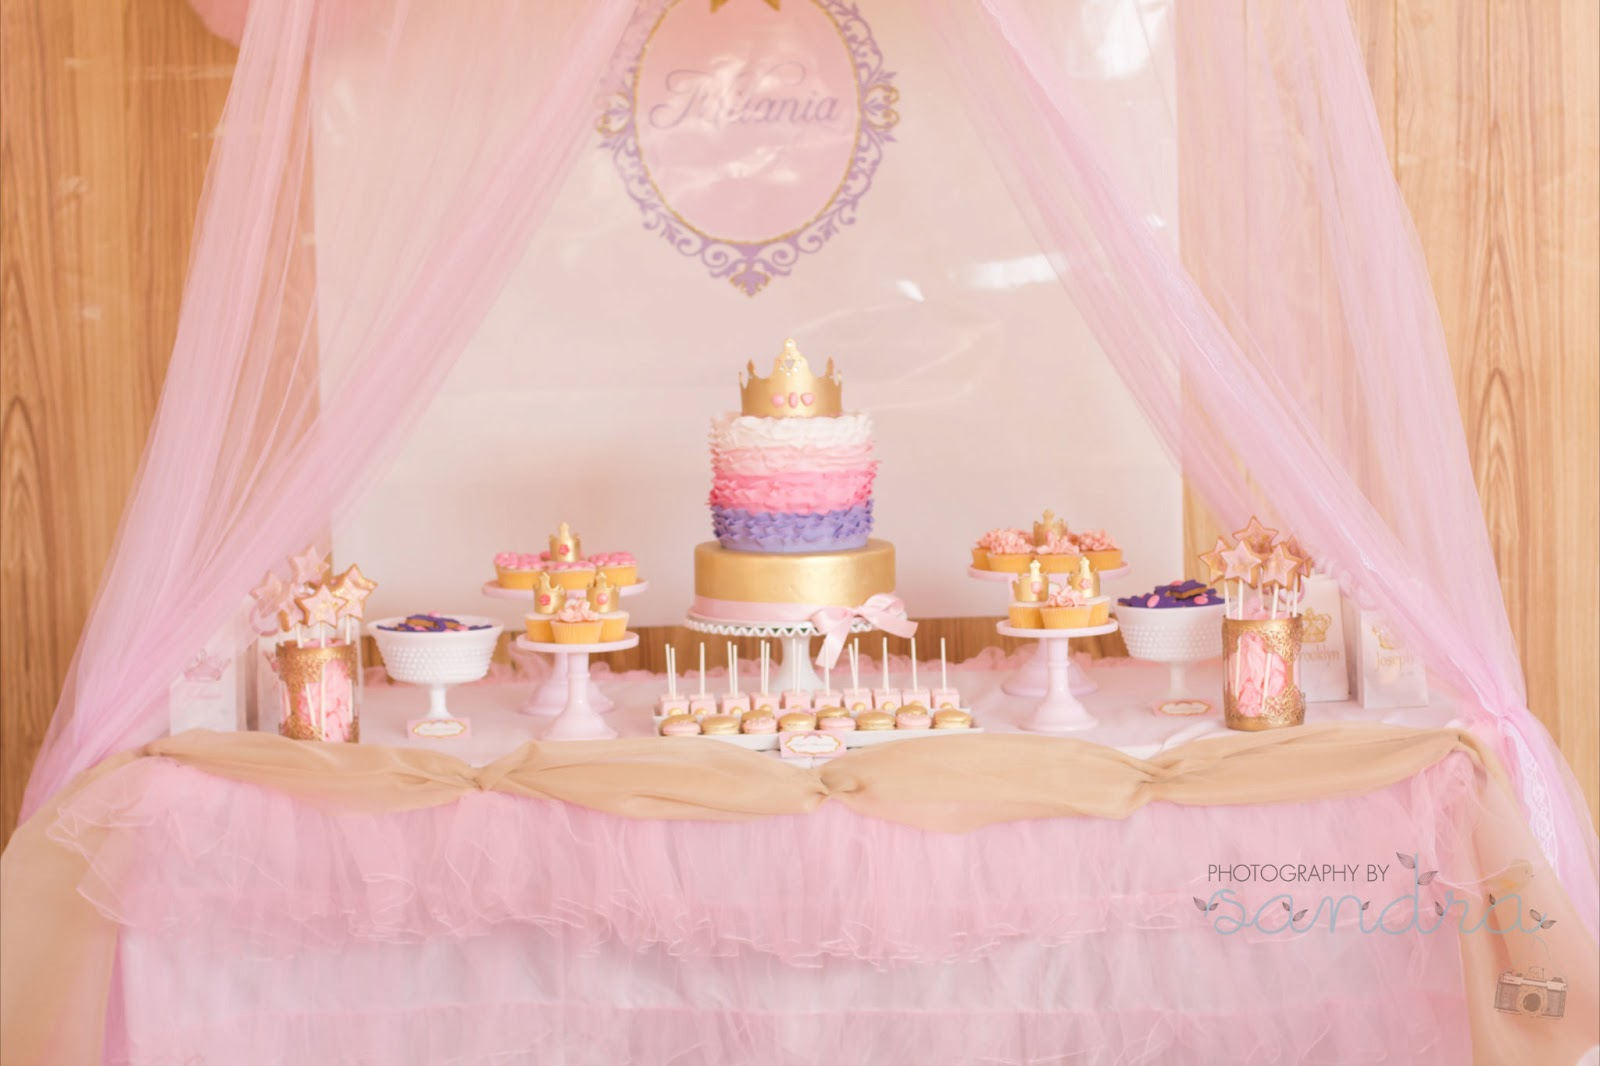 Pink Royal Princess Party For Milanias 1st Birthday By Natalie